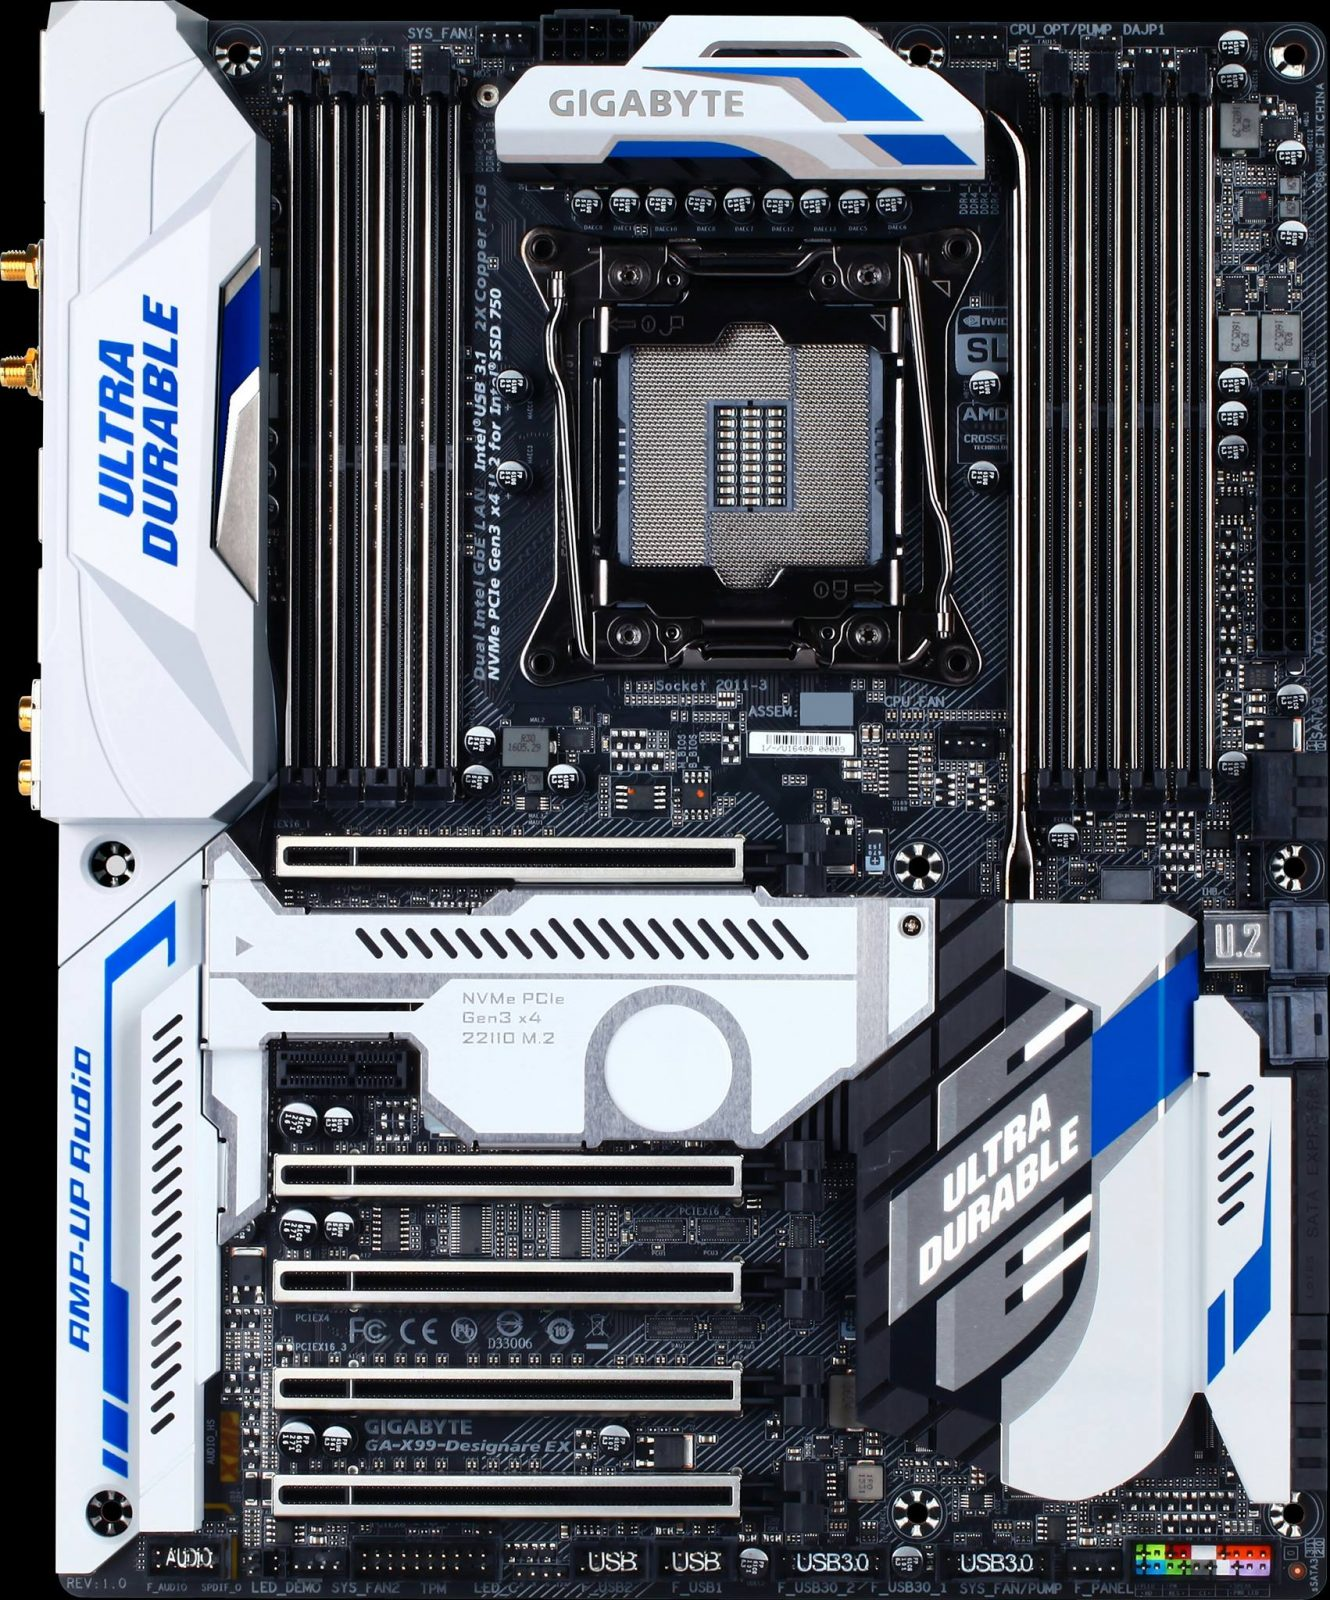 GIGABYTE teases next-gen X99 motherboards to be unveiled at